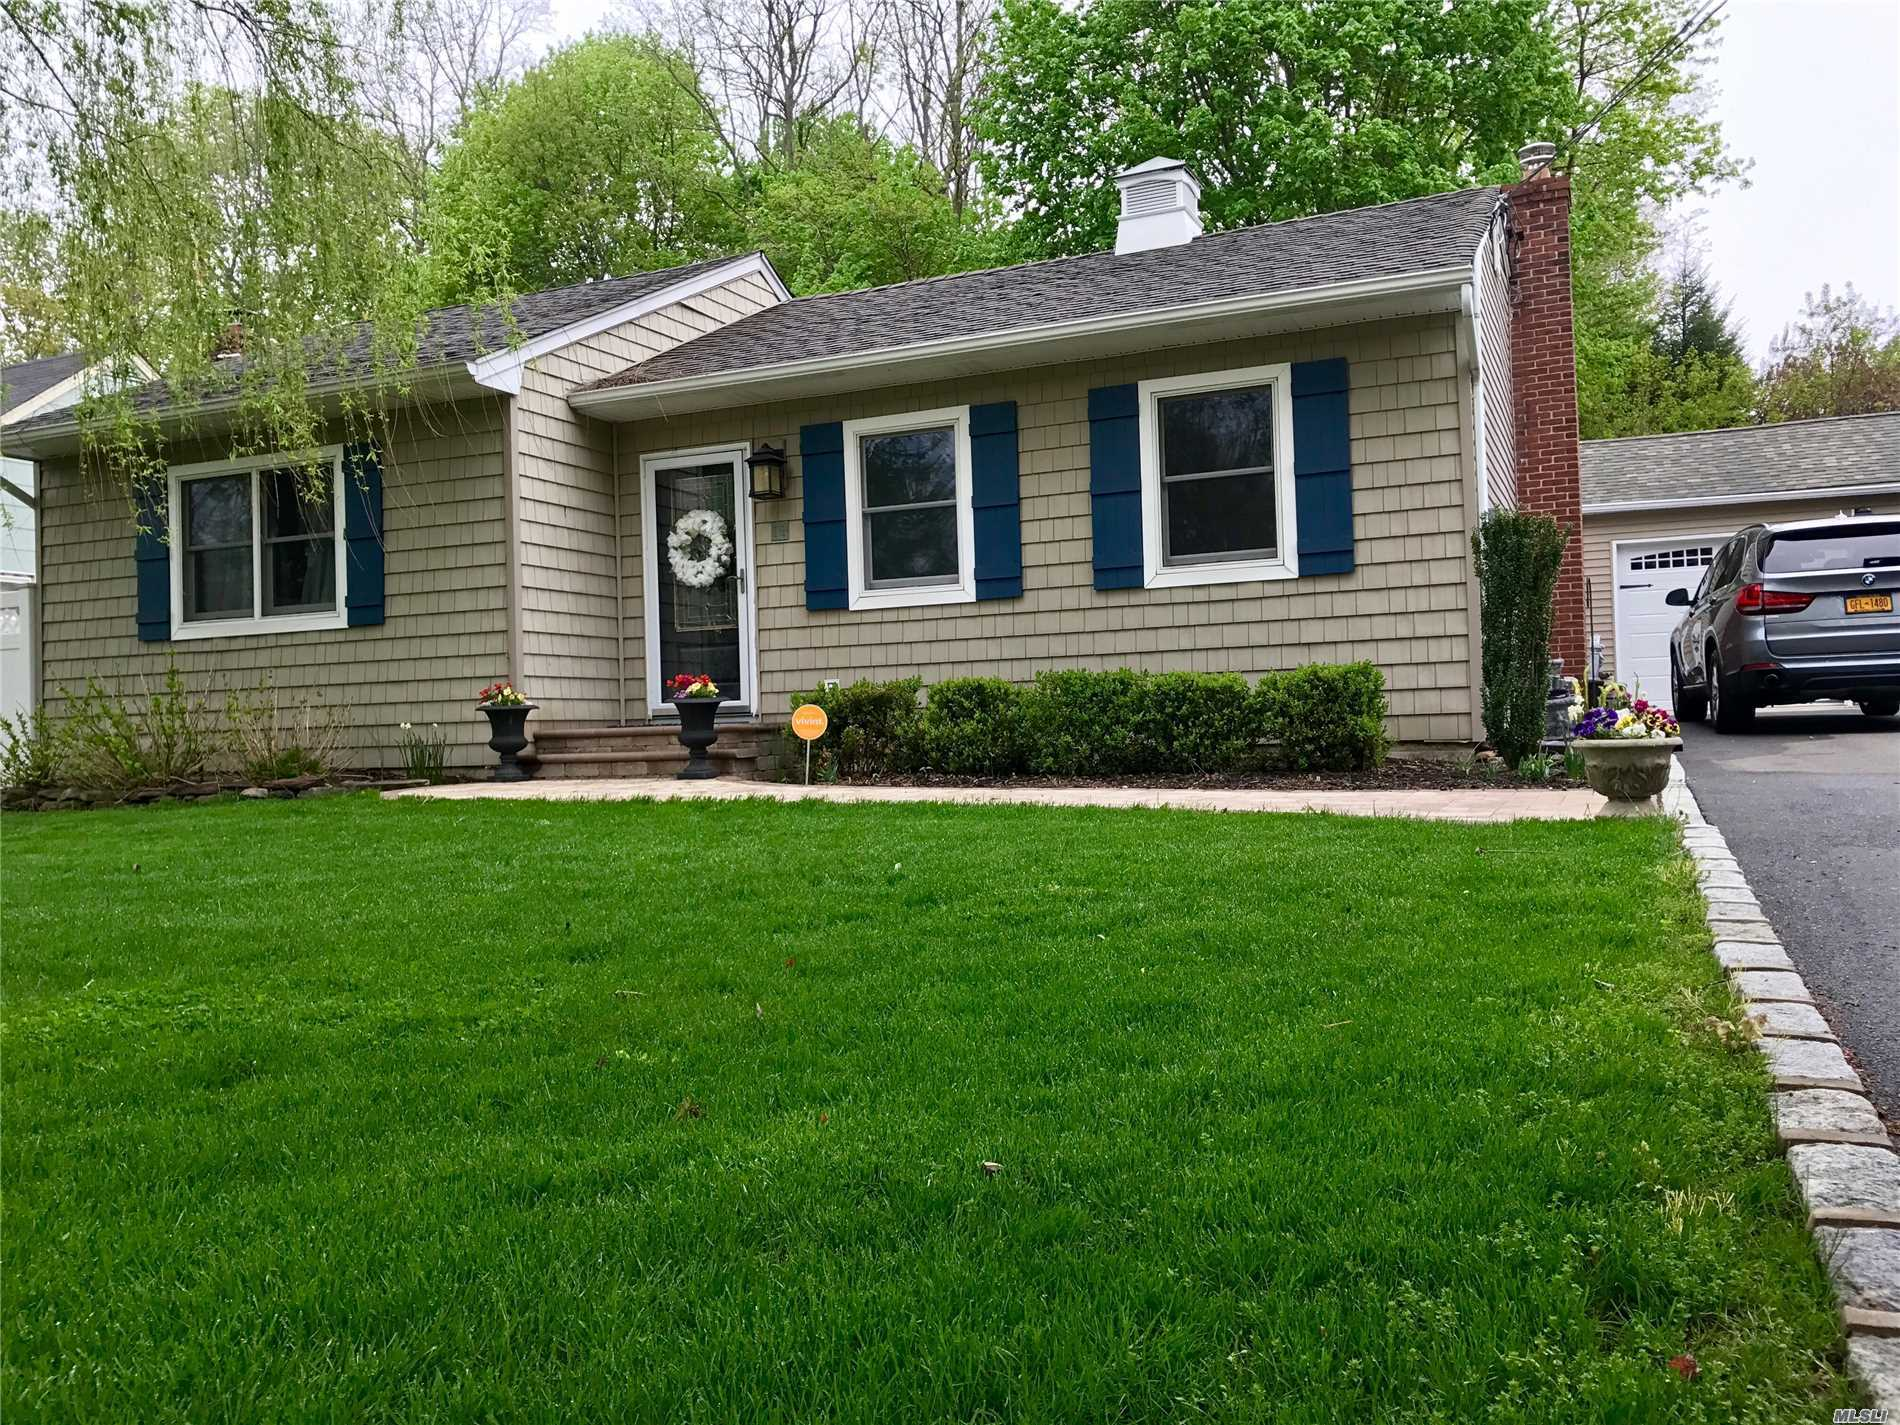 Diamond ++ Updated Ranch! Perfect Starter Or Downsize, New Cesspools, Kitchen Appliances, Gas Boiler, Driveway, Bath, Patio. Dead End Street Connects To Flower Hill Road. Quiet Block Close To Everything. To Many Updates To Mention. A Must See!